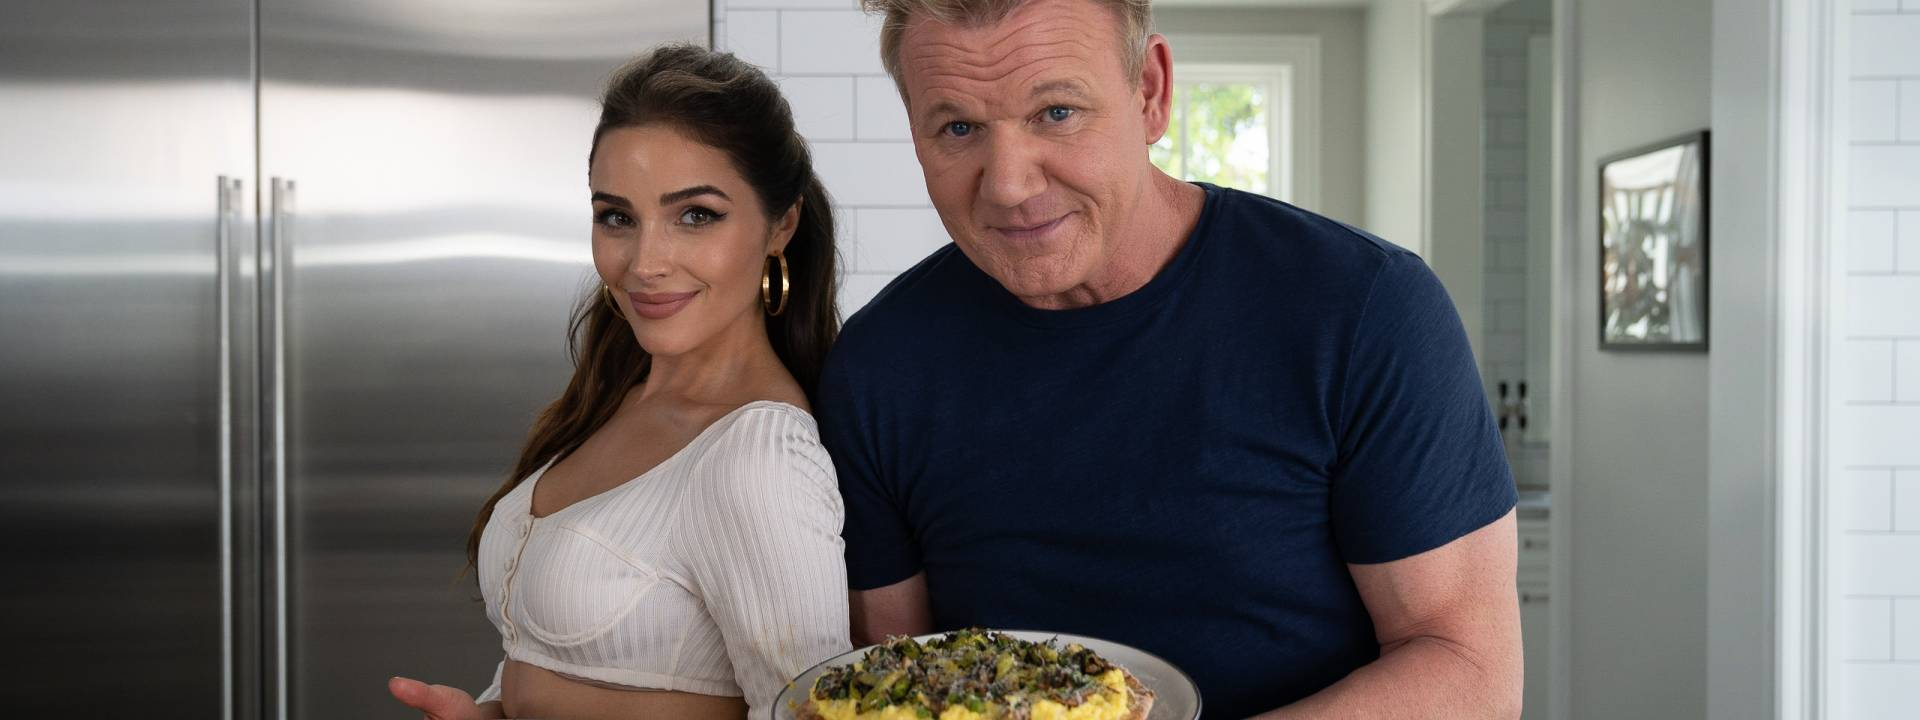 Gordon and Olivia breakfast pizza